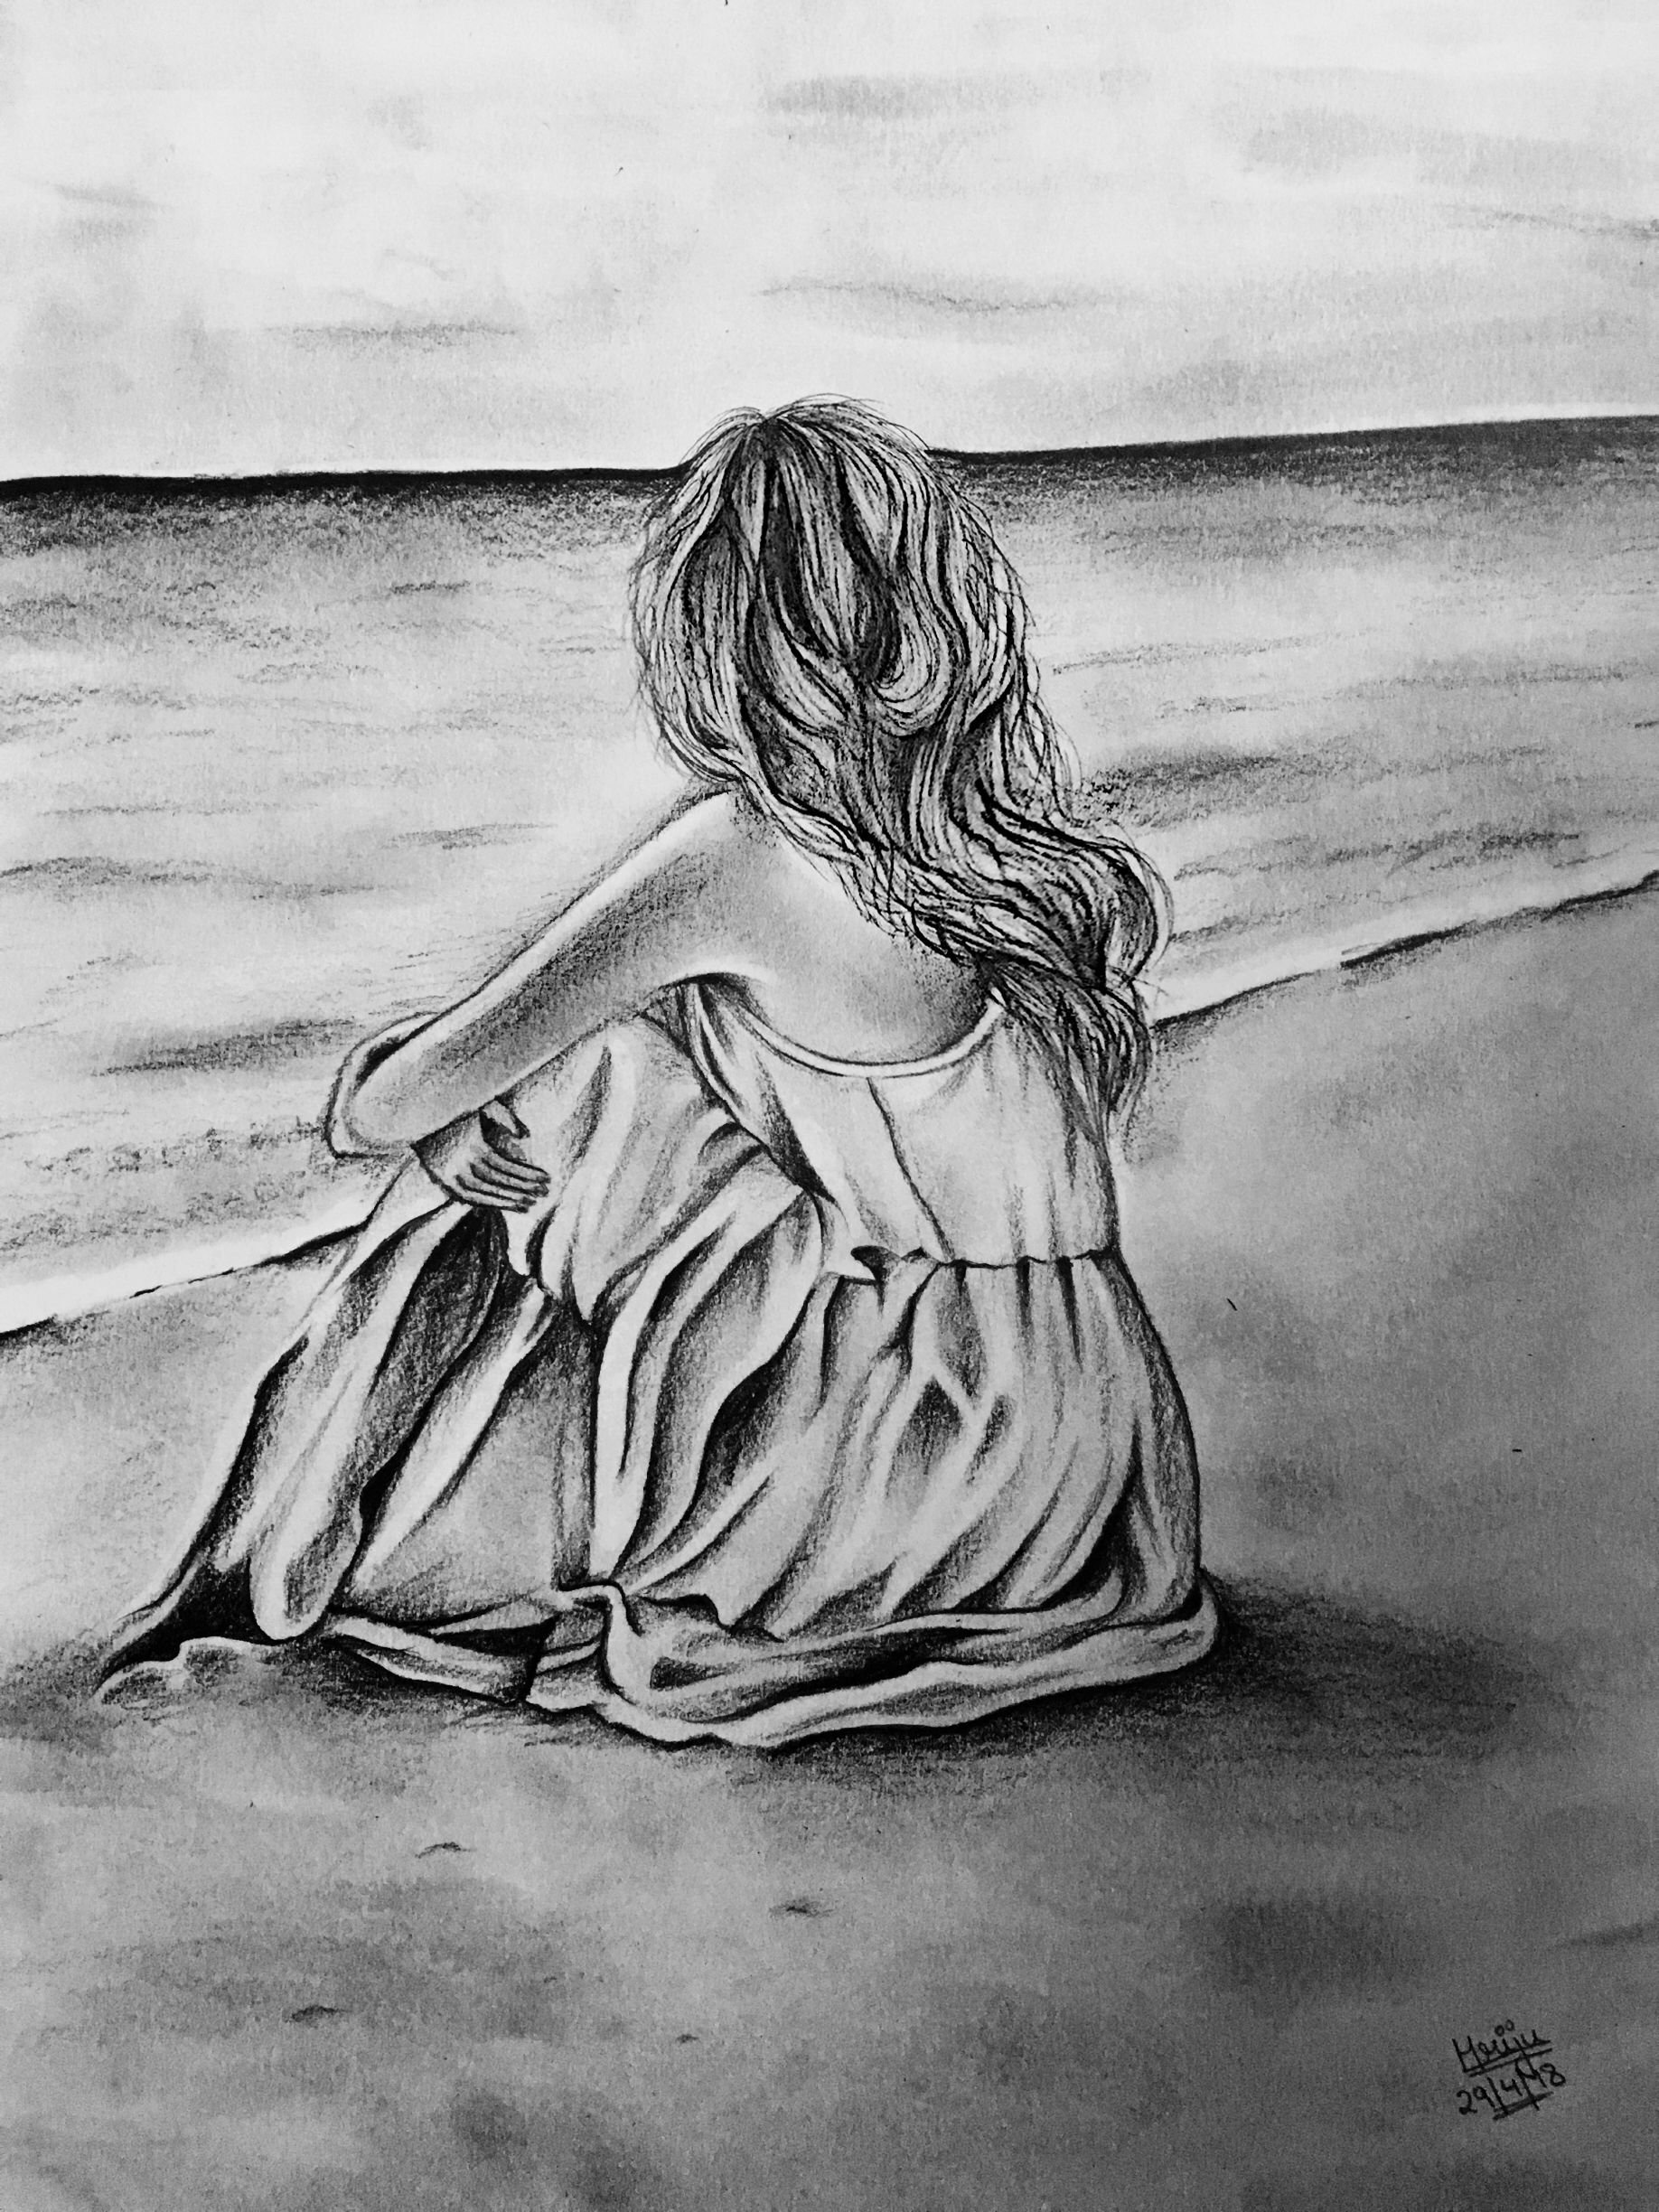 Pin By Rashmi On Pencil Sketches Art Drawings Sketches Creative Art Sketches Pencil Art Drawings Simple